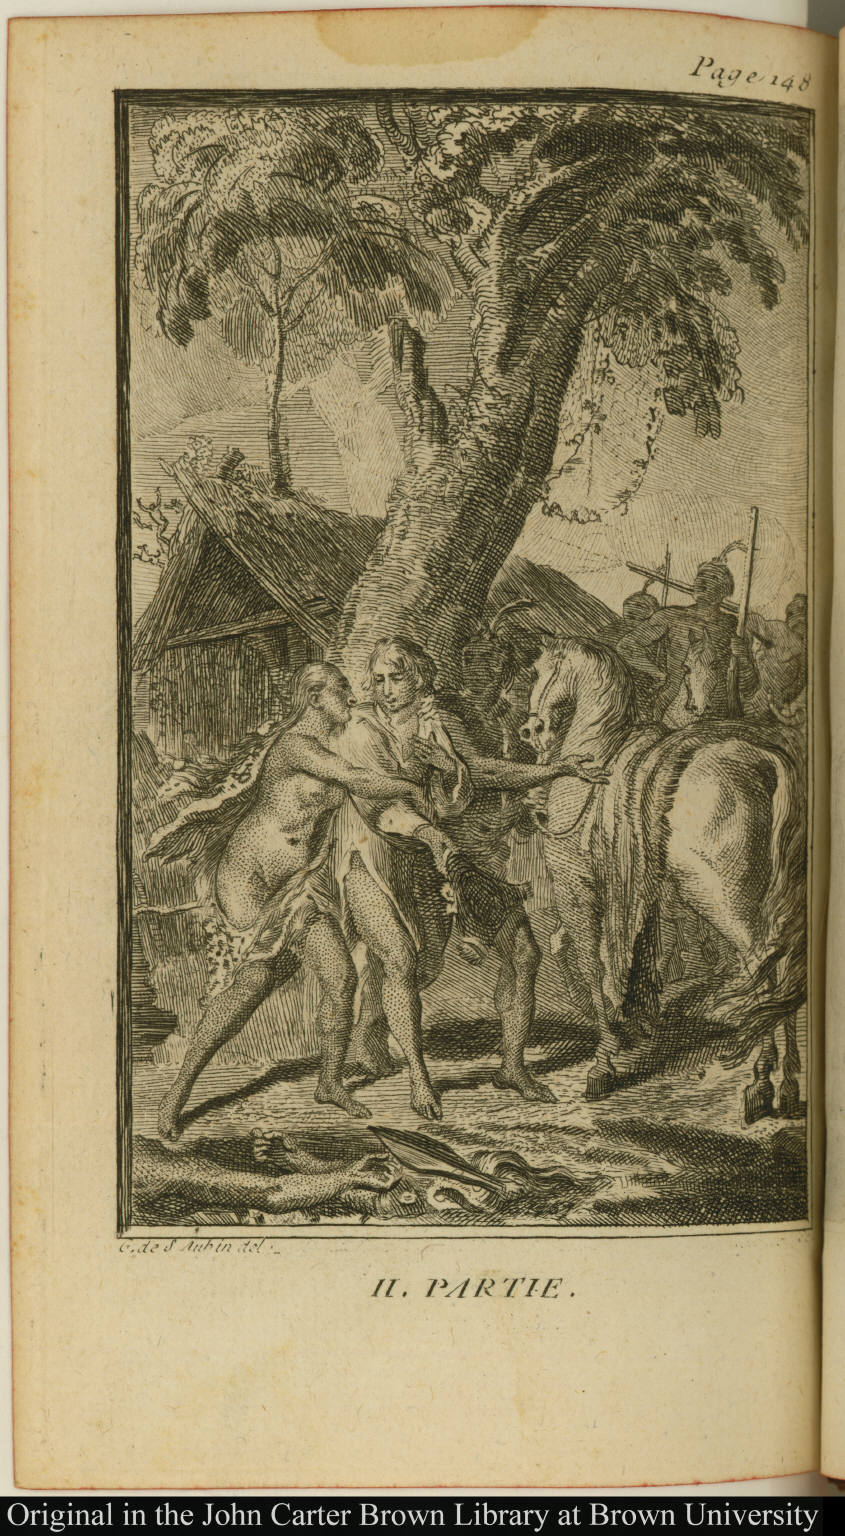 [European shown to his horse by a native American woman]